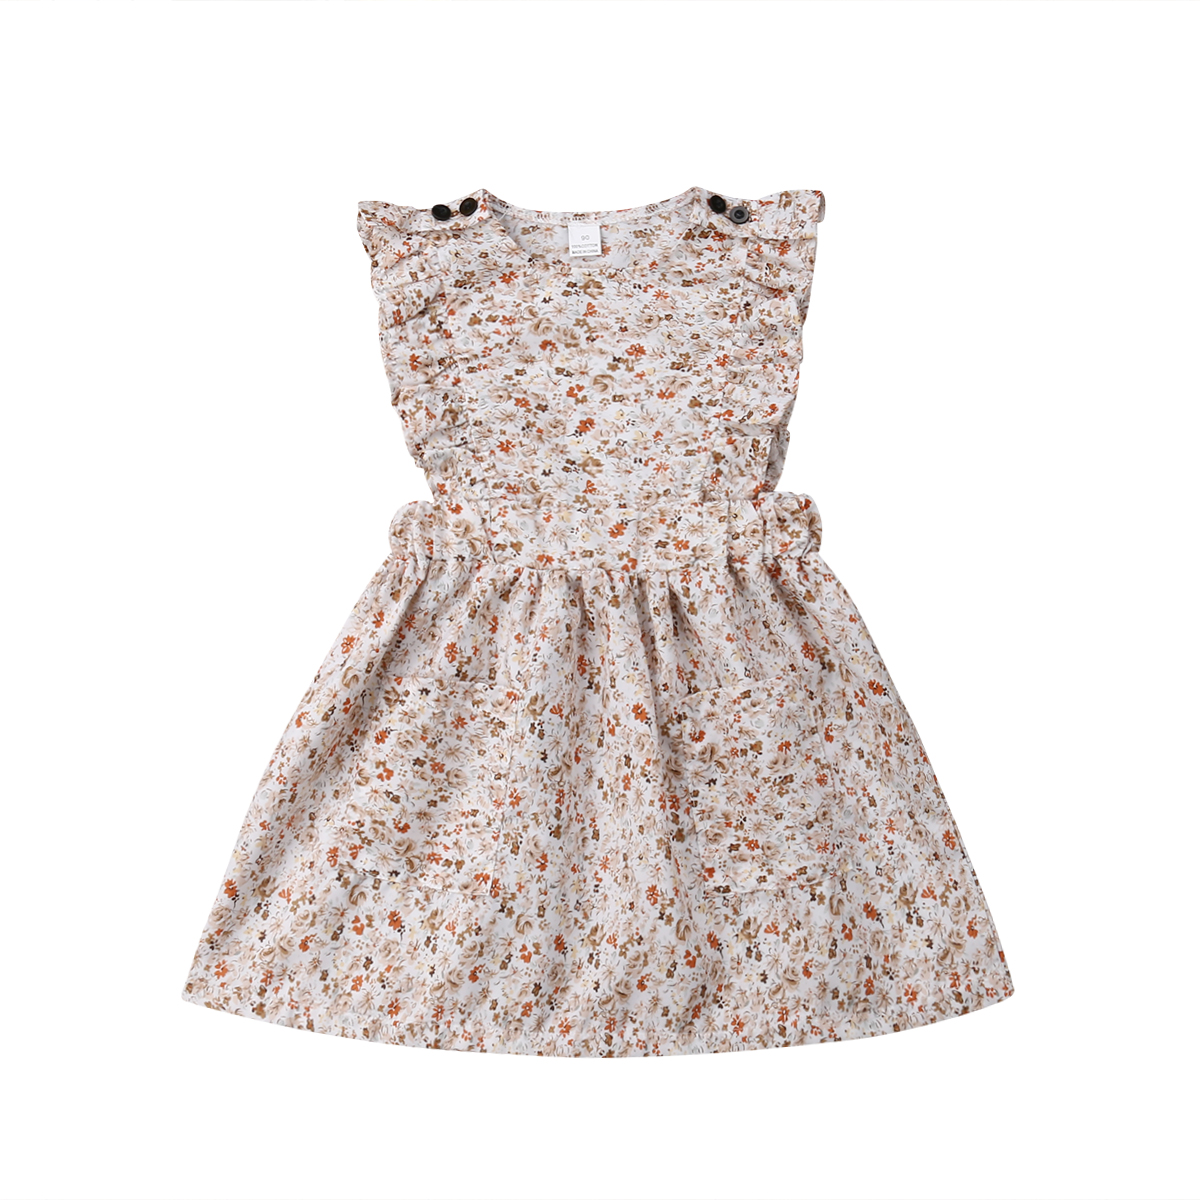 b453014d5df7a4 2019 Canis Family Matching Outfits Summer Newborn Baby Girl Sister Clothes  Floral Dress Romper Jumpsuit ~ Best Seller July 2019